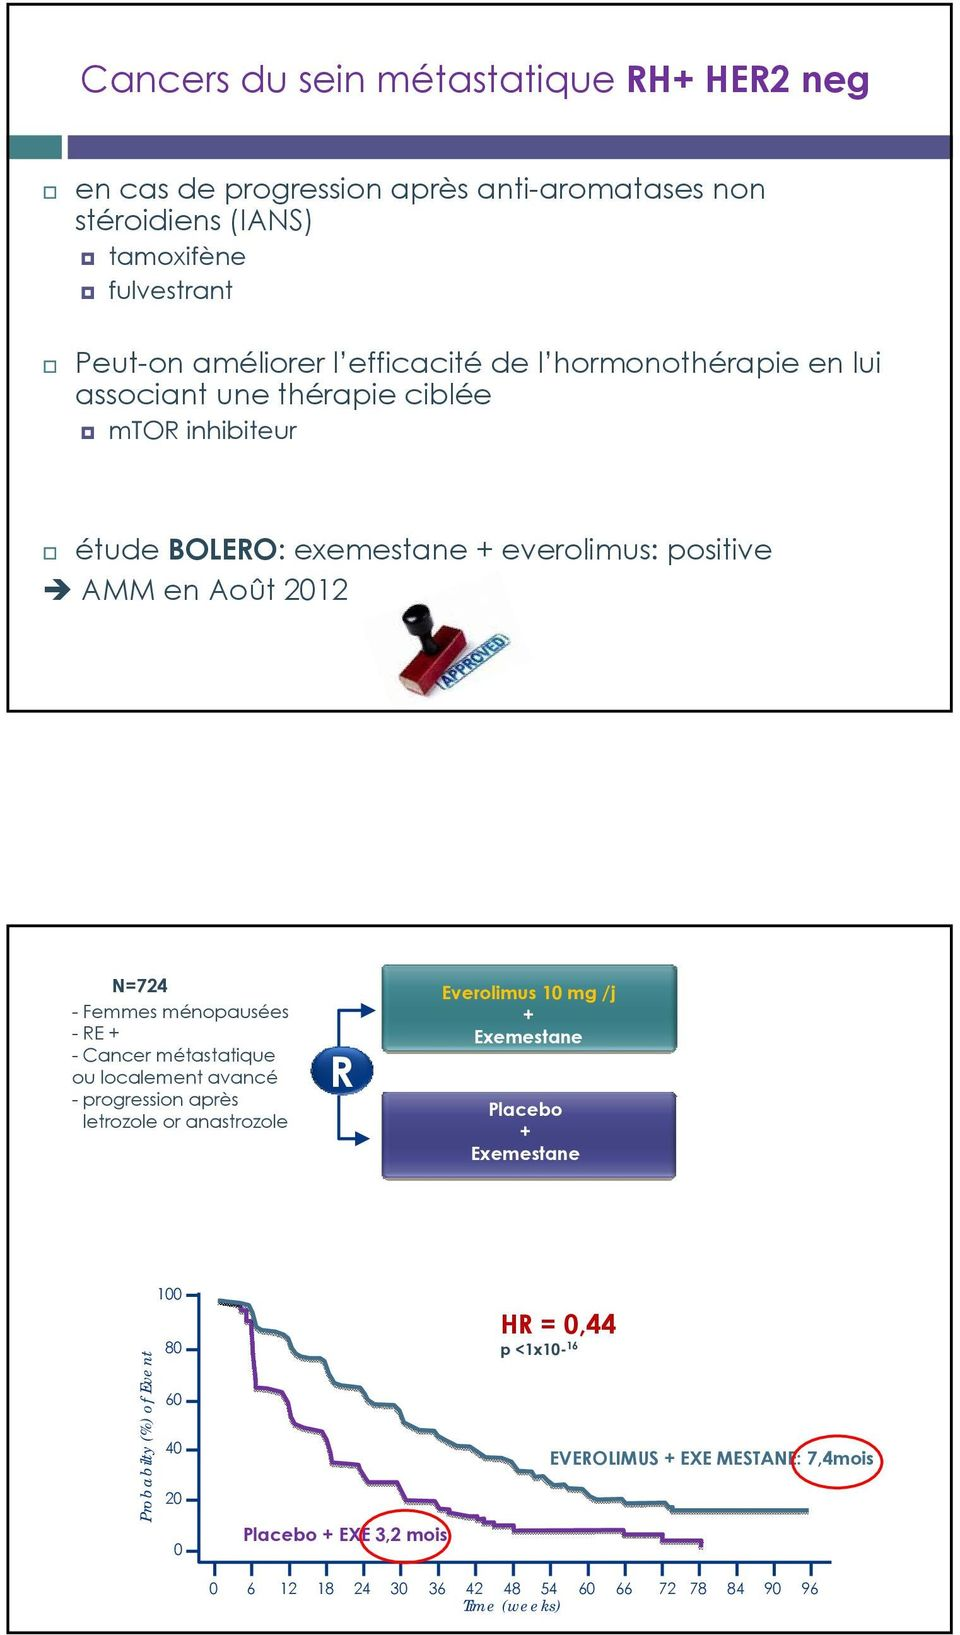 ménopausées -RE + - Cancer métastatique ou localement avancé - progression après letrozole or anastrozole R Everolimus 10 mg /j + Exemestane Placebo + Exemestane